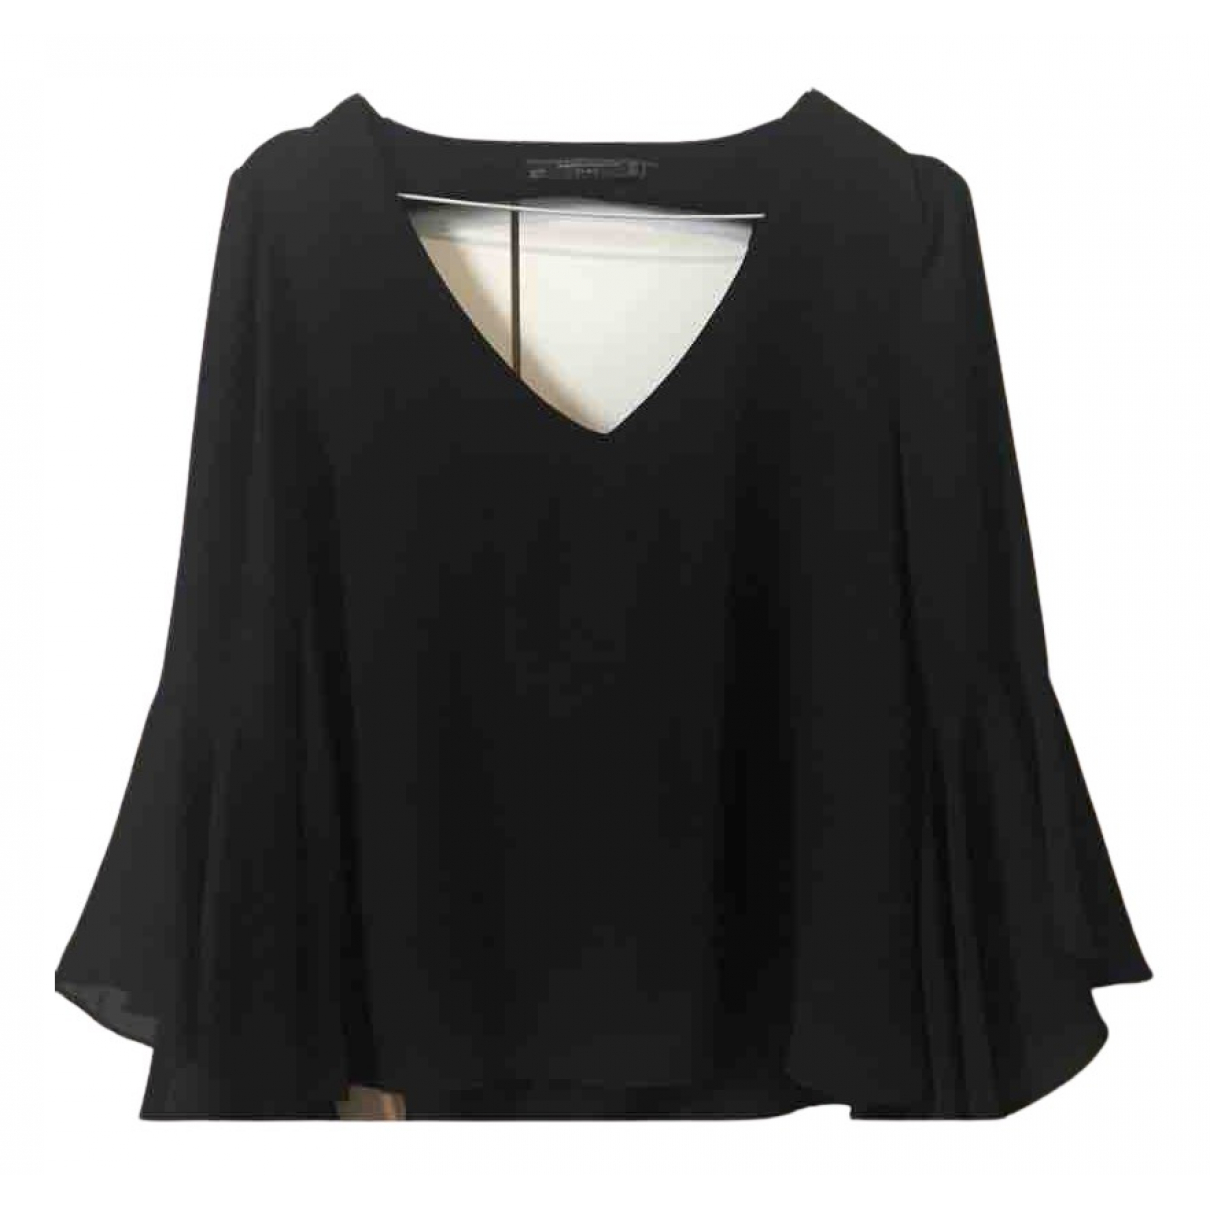 Zara \N Top in  Schwarz Synthetik